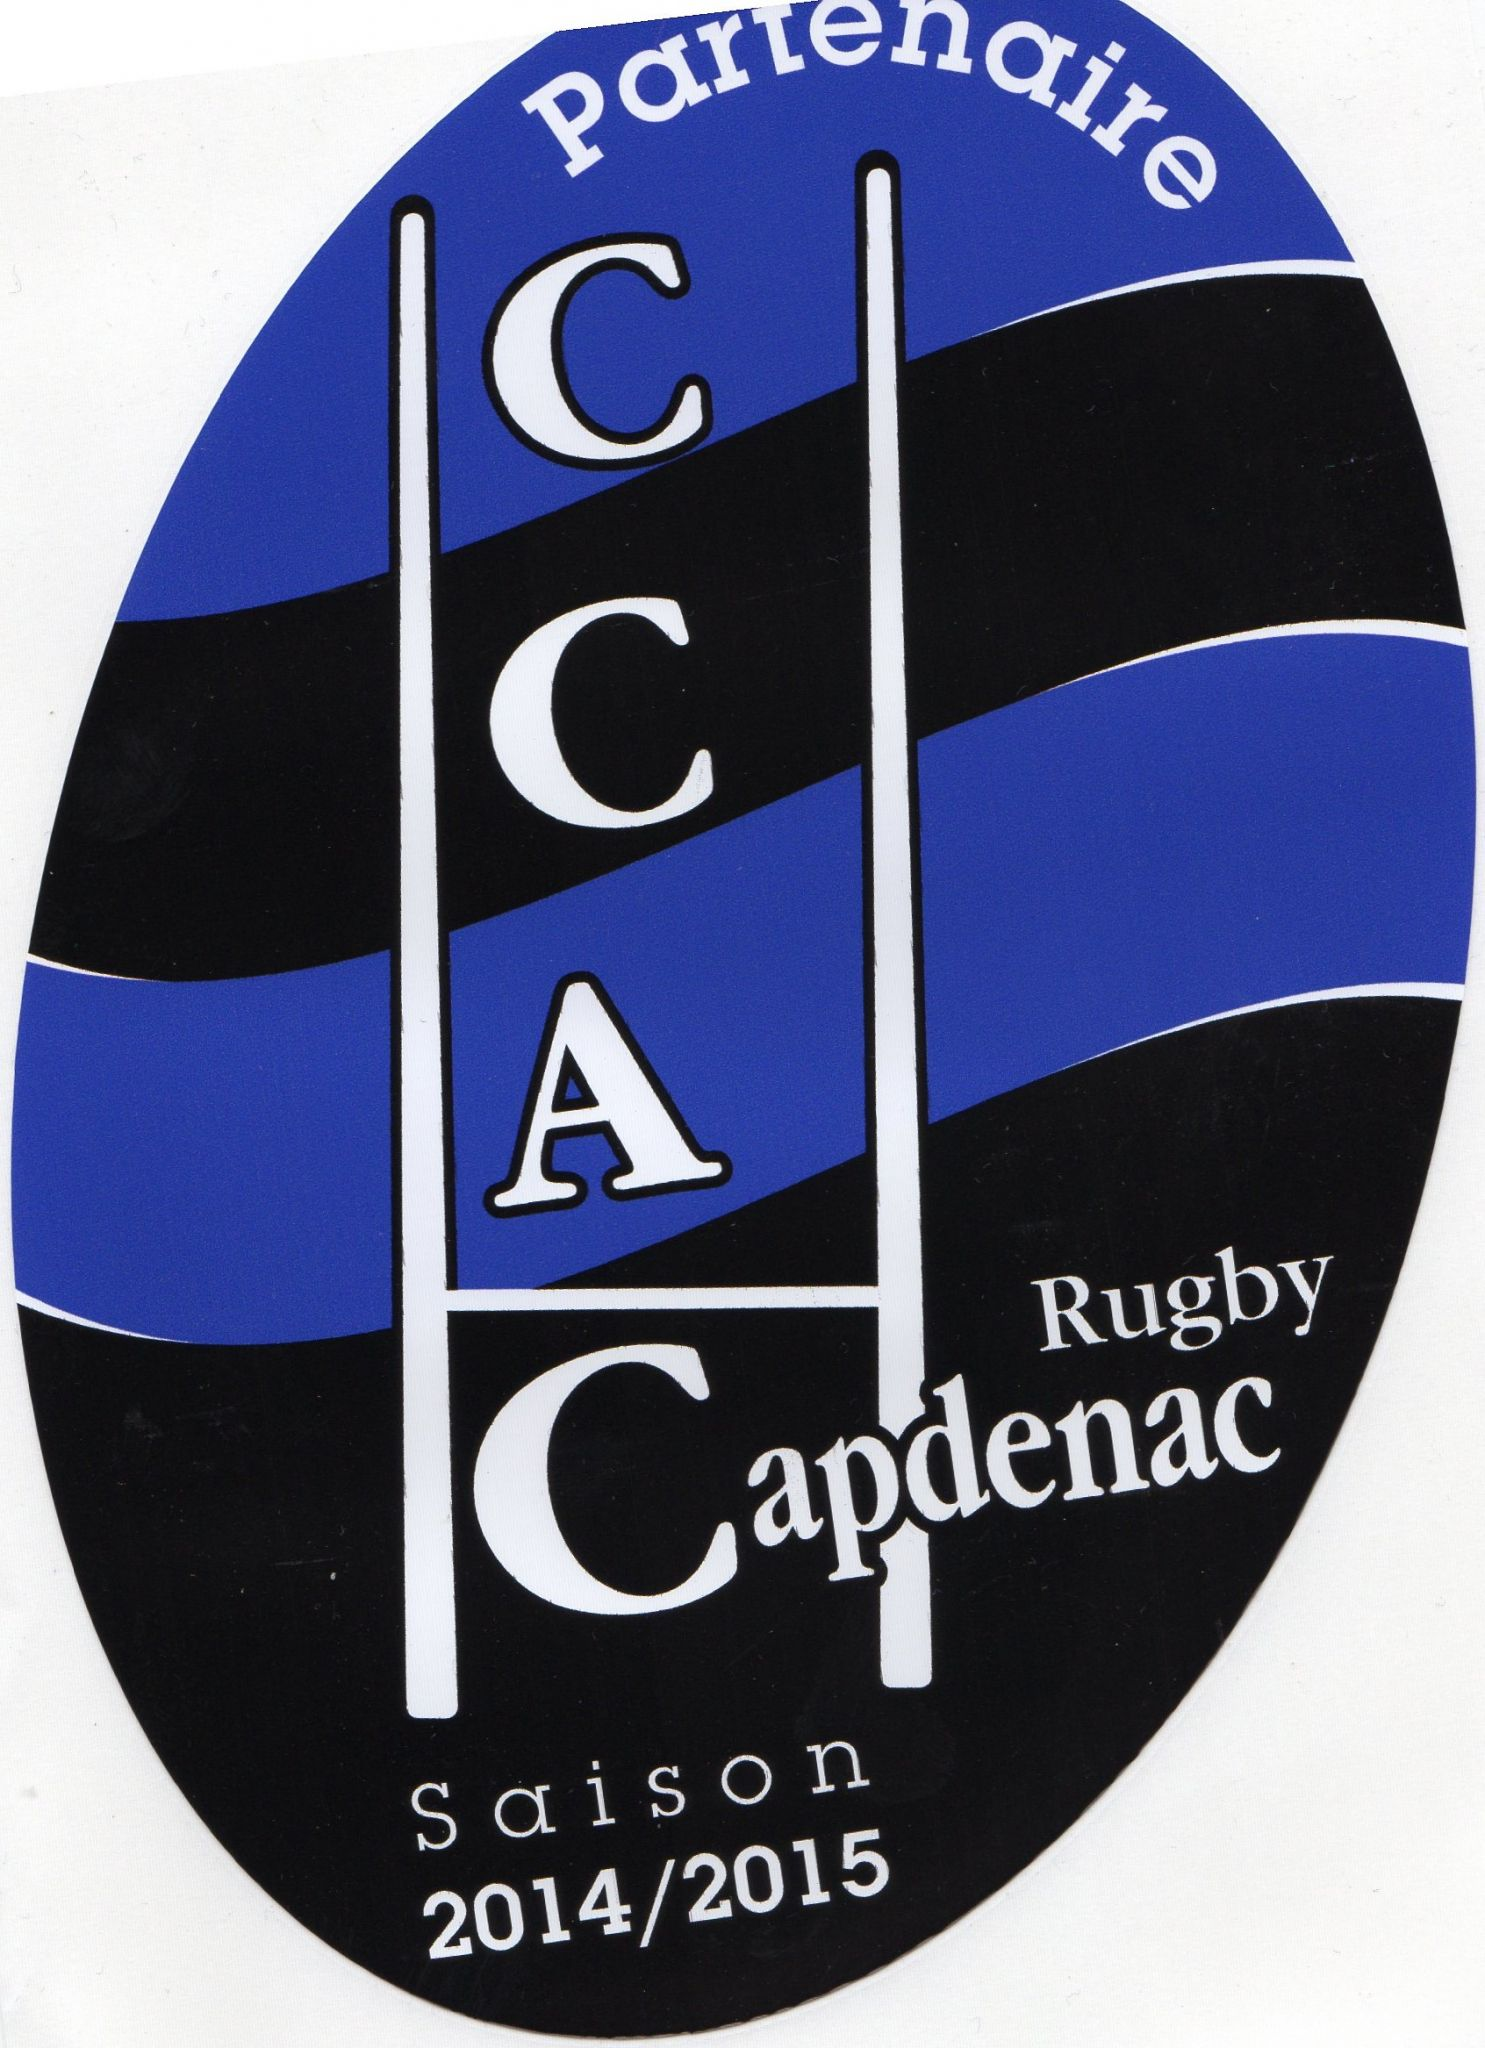 ccac rugby